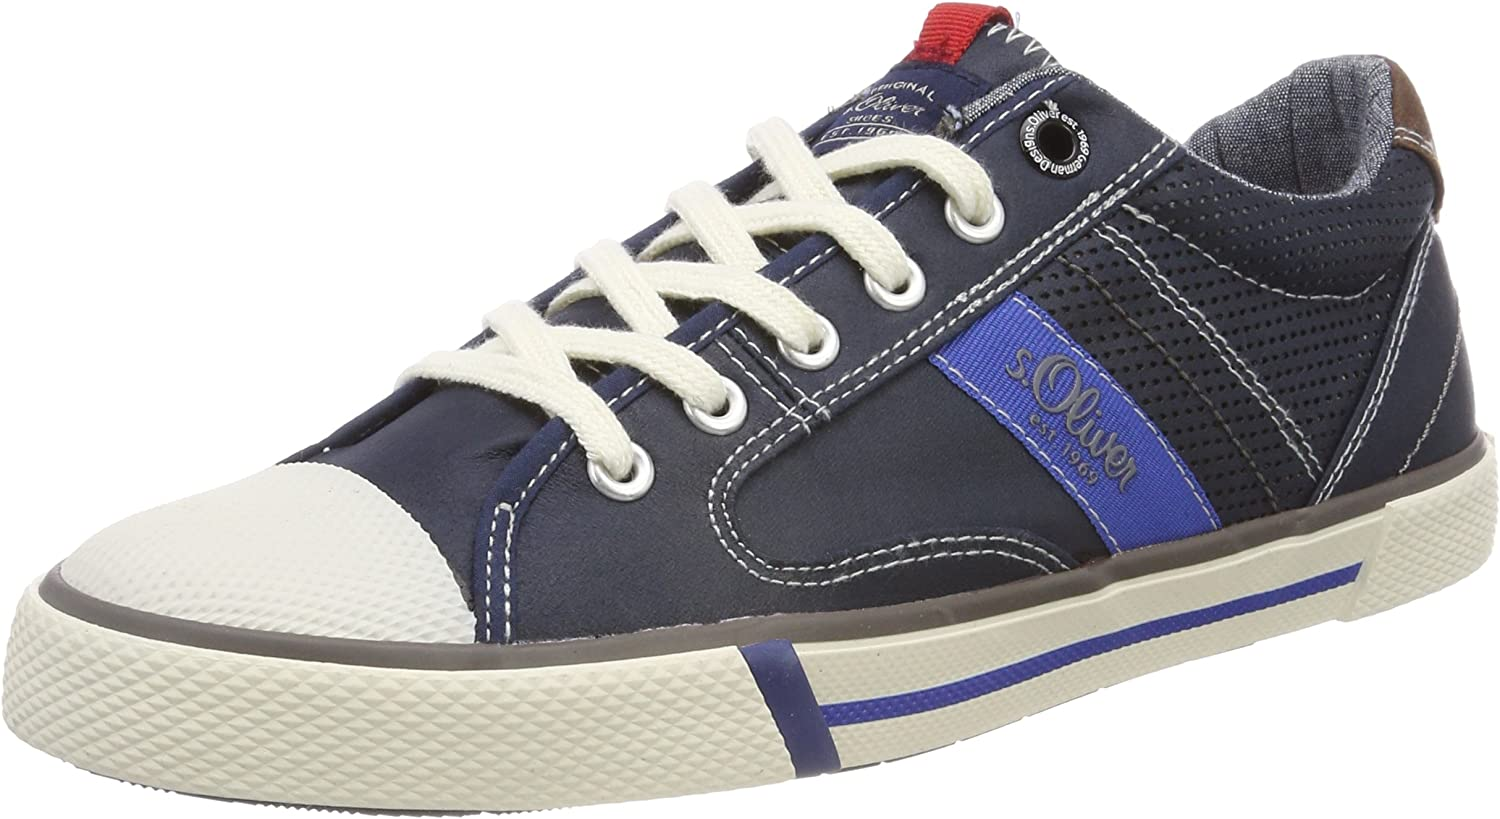 S Oliver S Oliver Womens shoes 13602 Navy